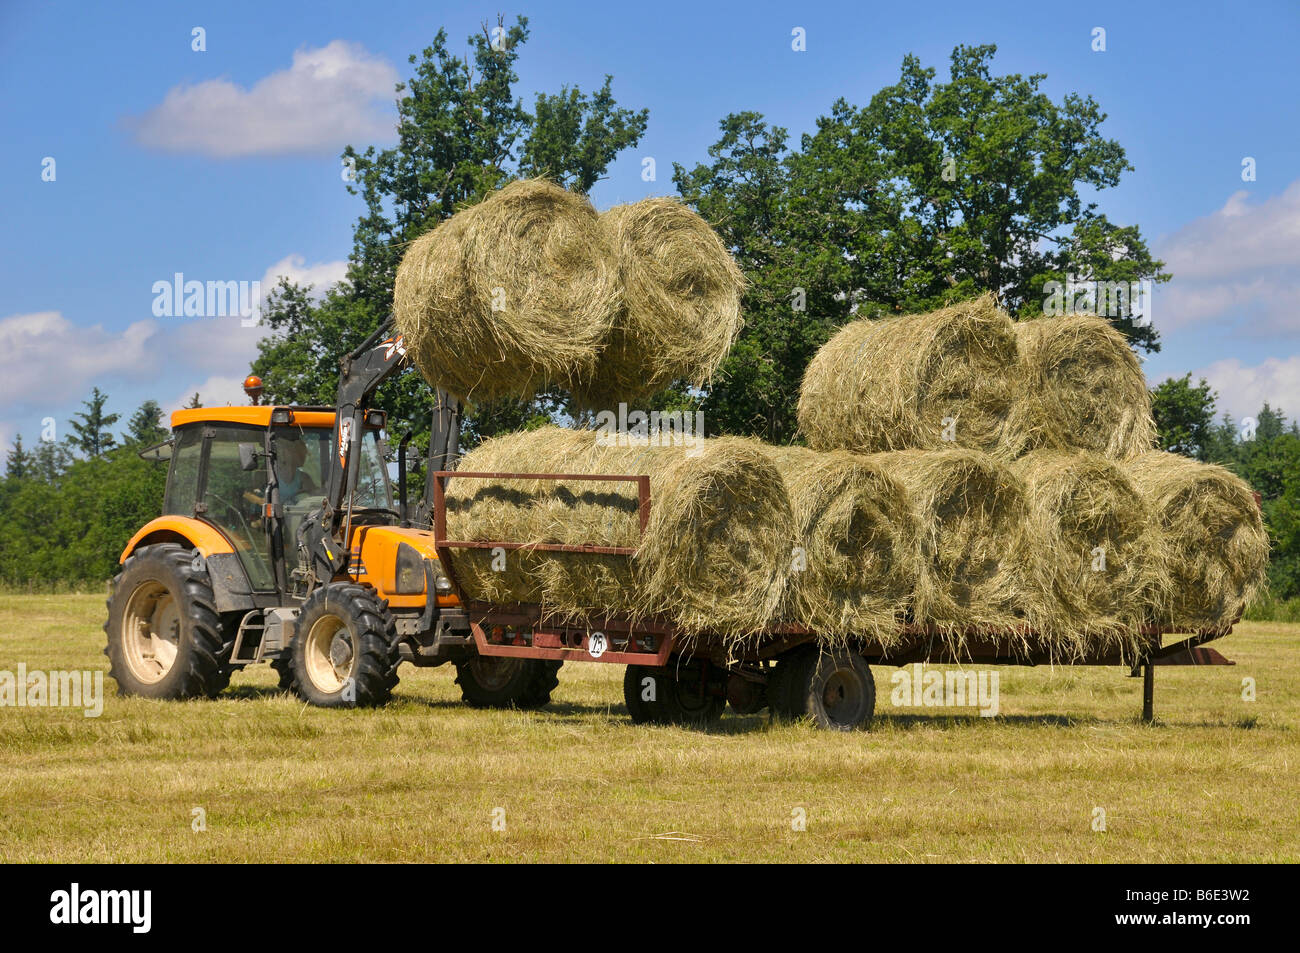 Make hay: A tractor with forks loads a trailer of hay balls. Stock Photo